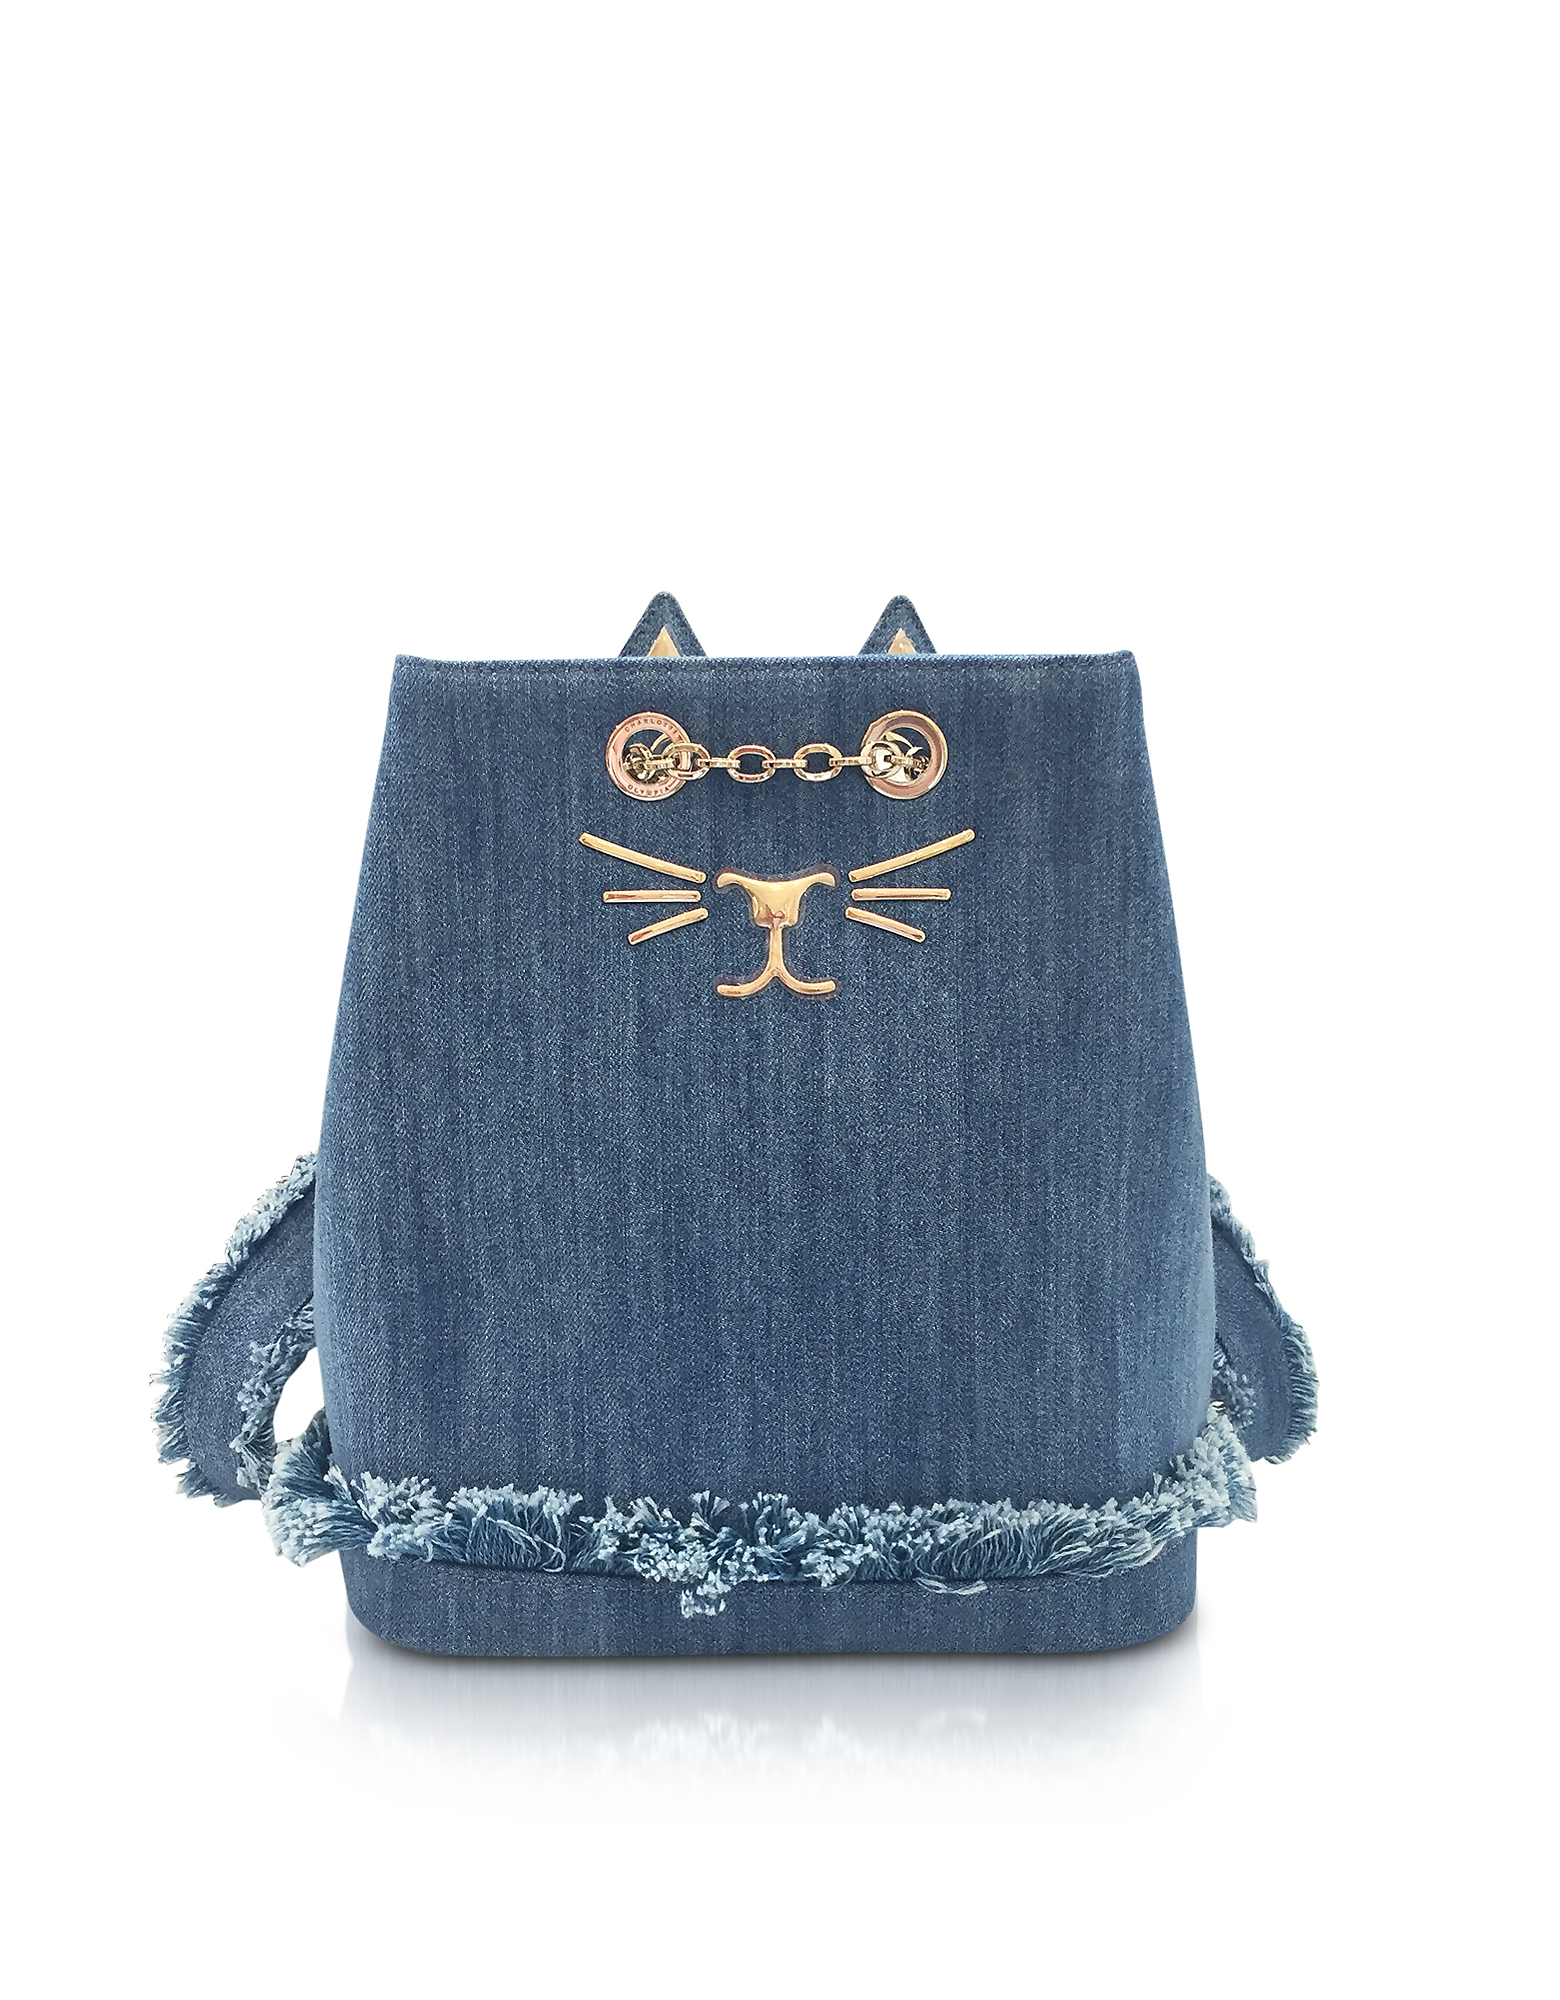 Charlotte Olympia Handbags, Medium Denim Petit Feline Backpack